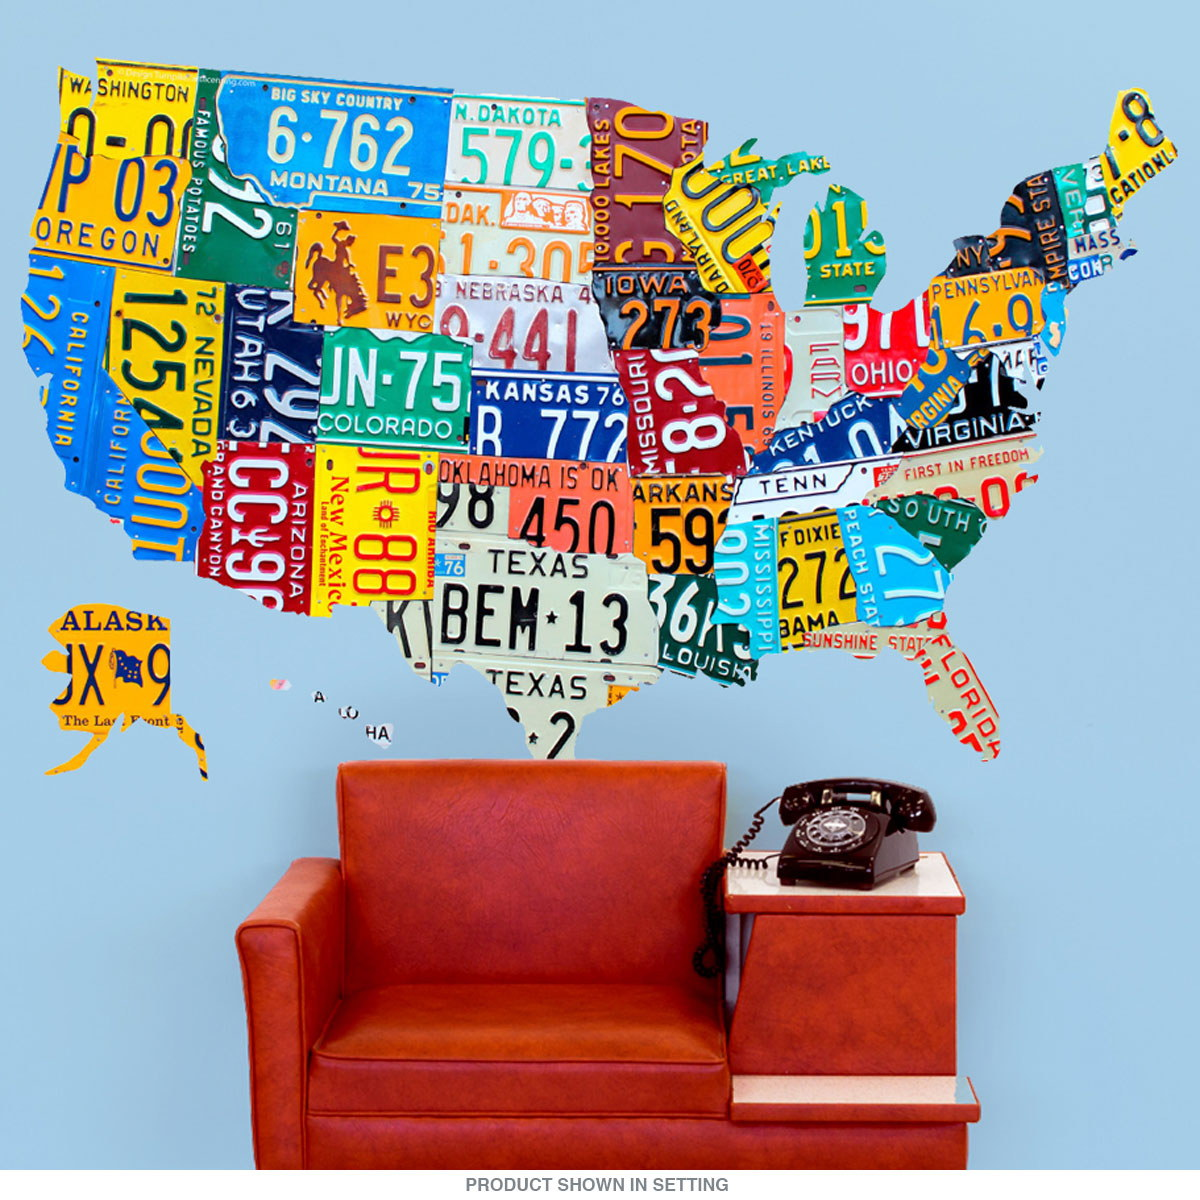 USA 50 Cutout License Plate Style Wall Decal License Plate Usa Map Gift on watercolor usa map, license plates for each state, time usa map, color usa map, golf usa map, reverse usa map, driving usa map, leapfrog interactive united states map, list 50 states and capitals map, flag usa map, motorcycle usa map, decals usa map, state usa map, baseball usa map, basketball usa map, license plate map art, paint usa map, license plate world map, map usa map, art usa map,